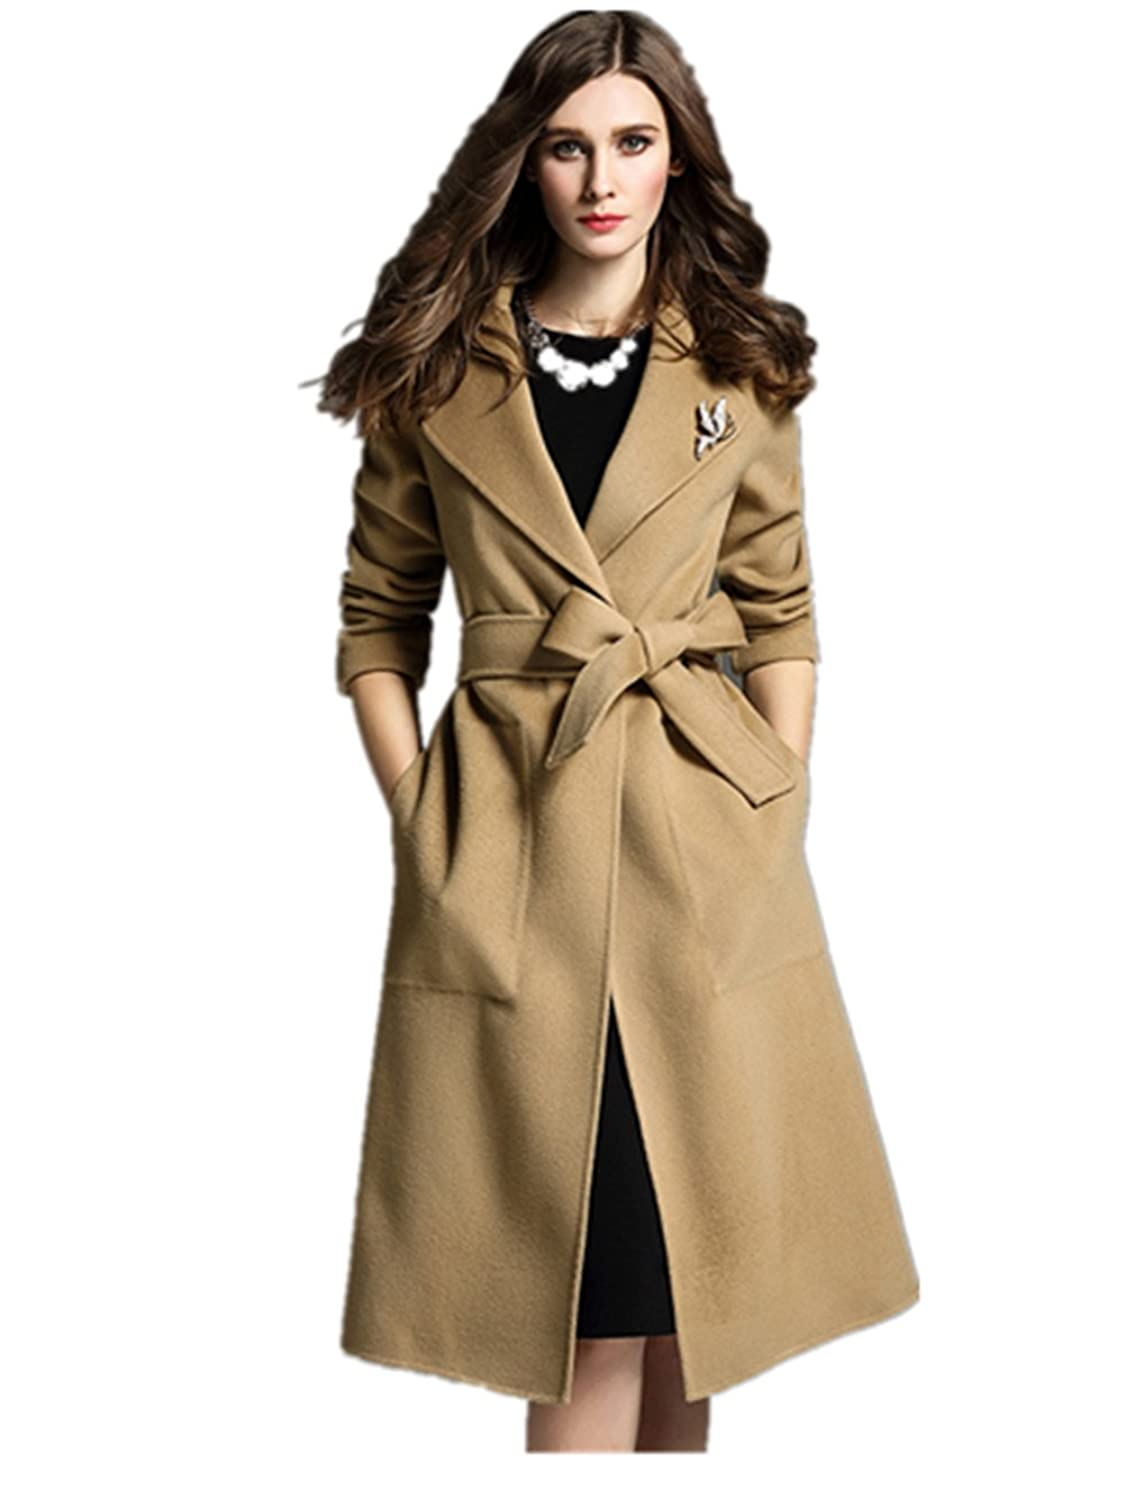 YINHAN Women's Big Plus Size One Button Long Wool Coats Parkas